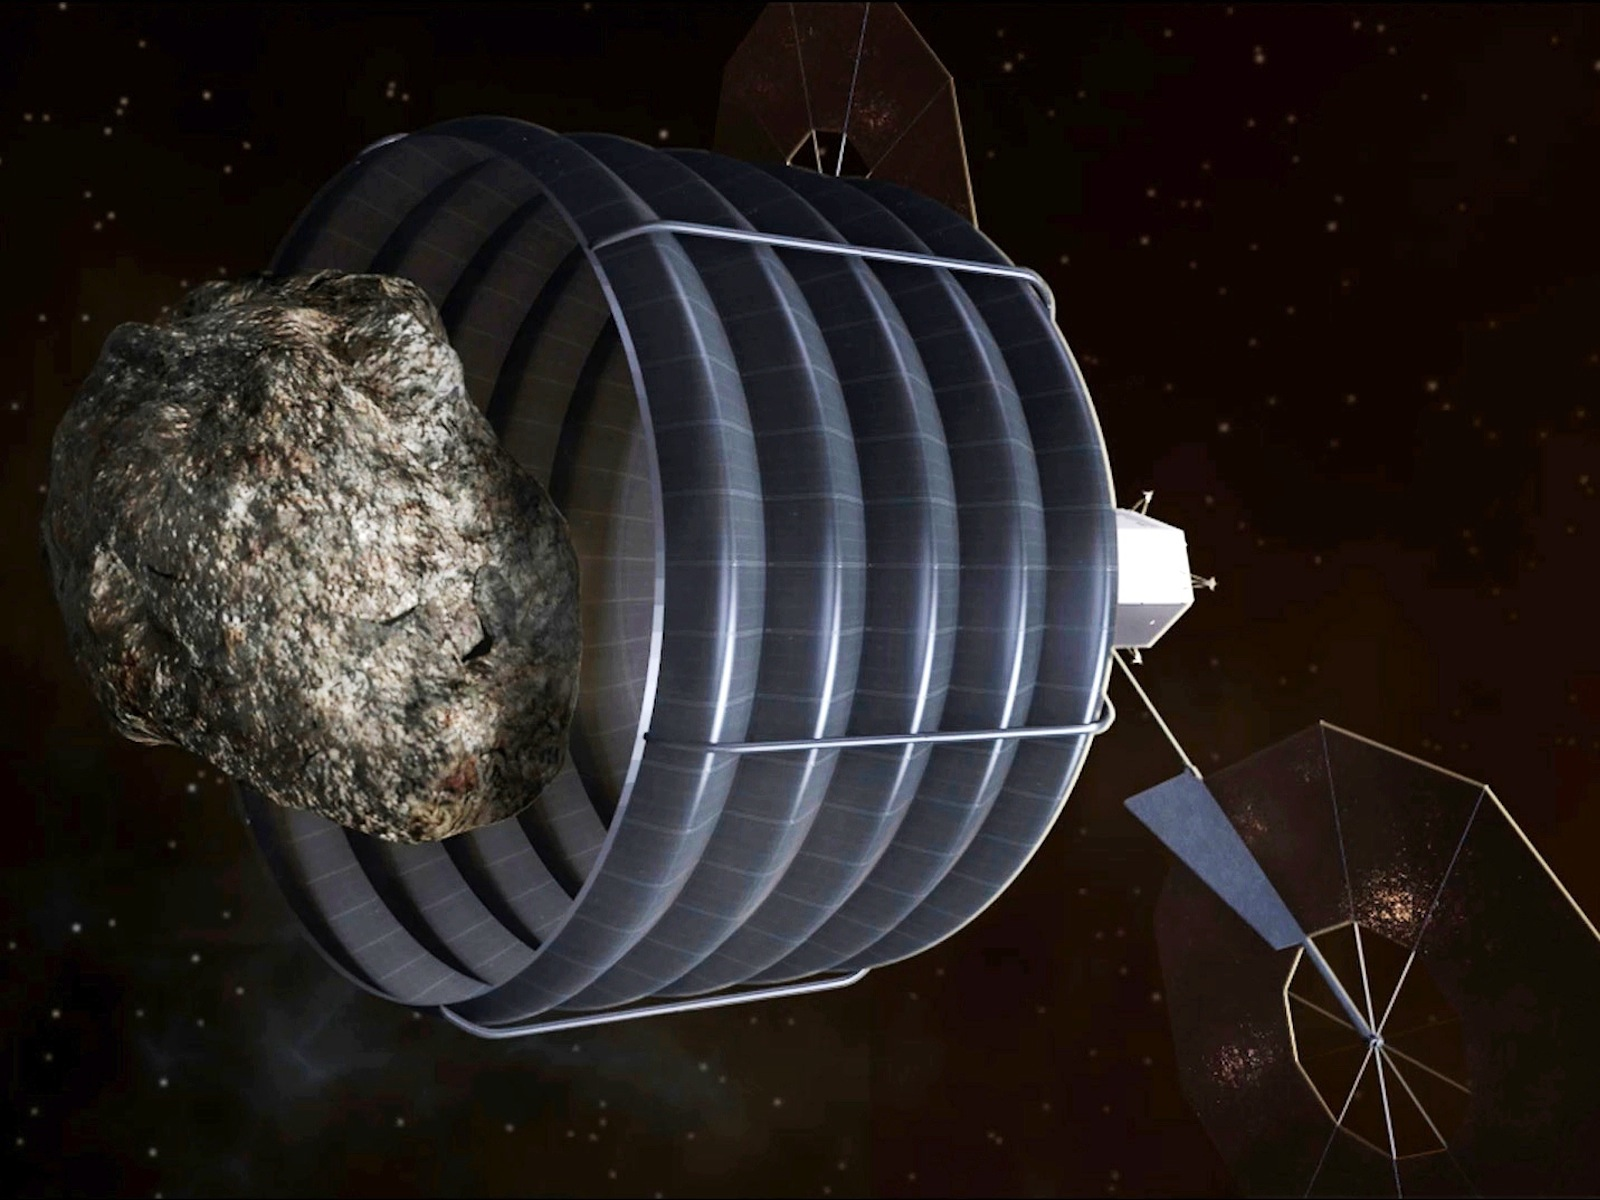 Asteroid Capturing Spacecraft Concept space wallpaper